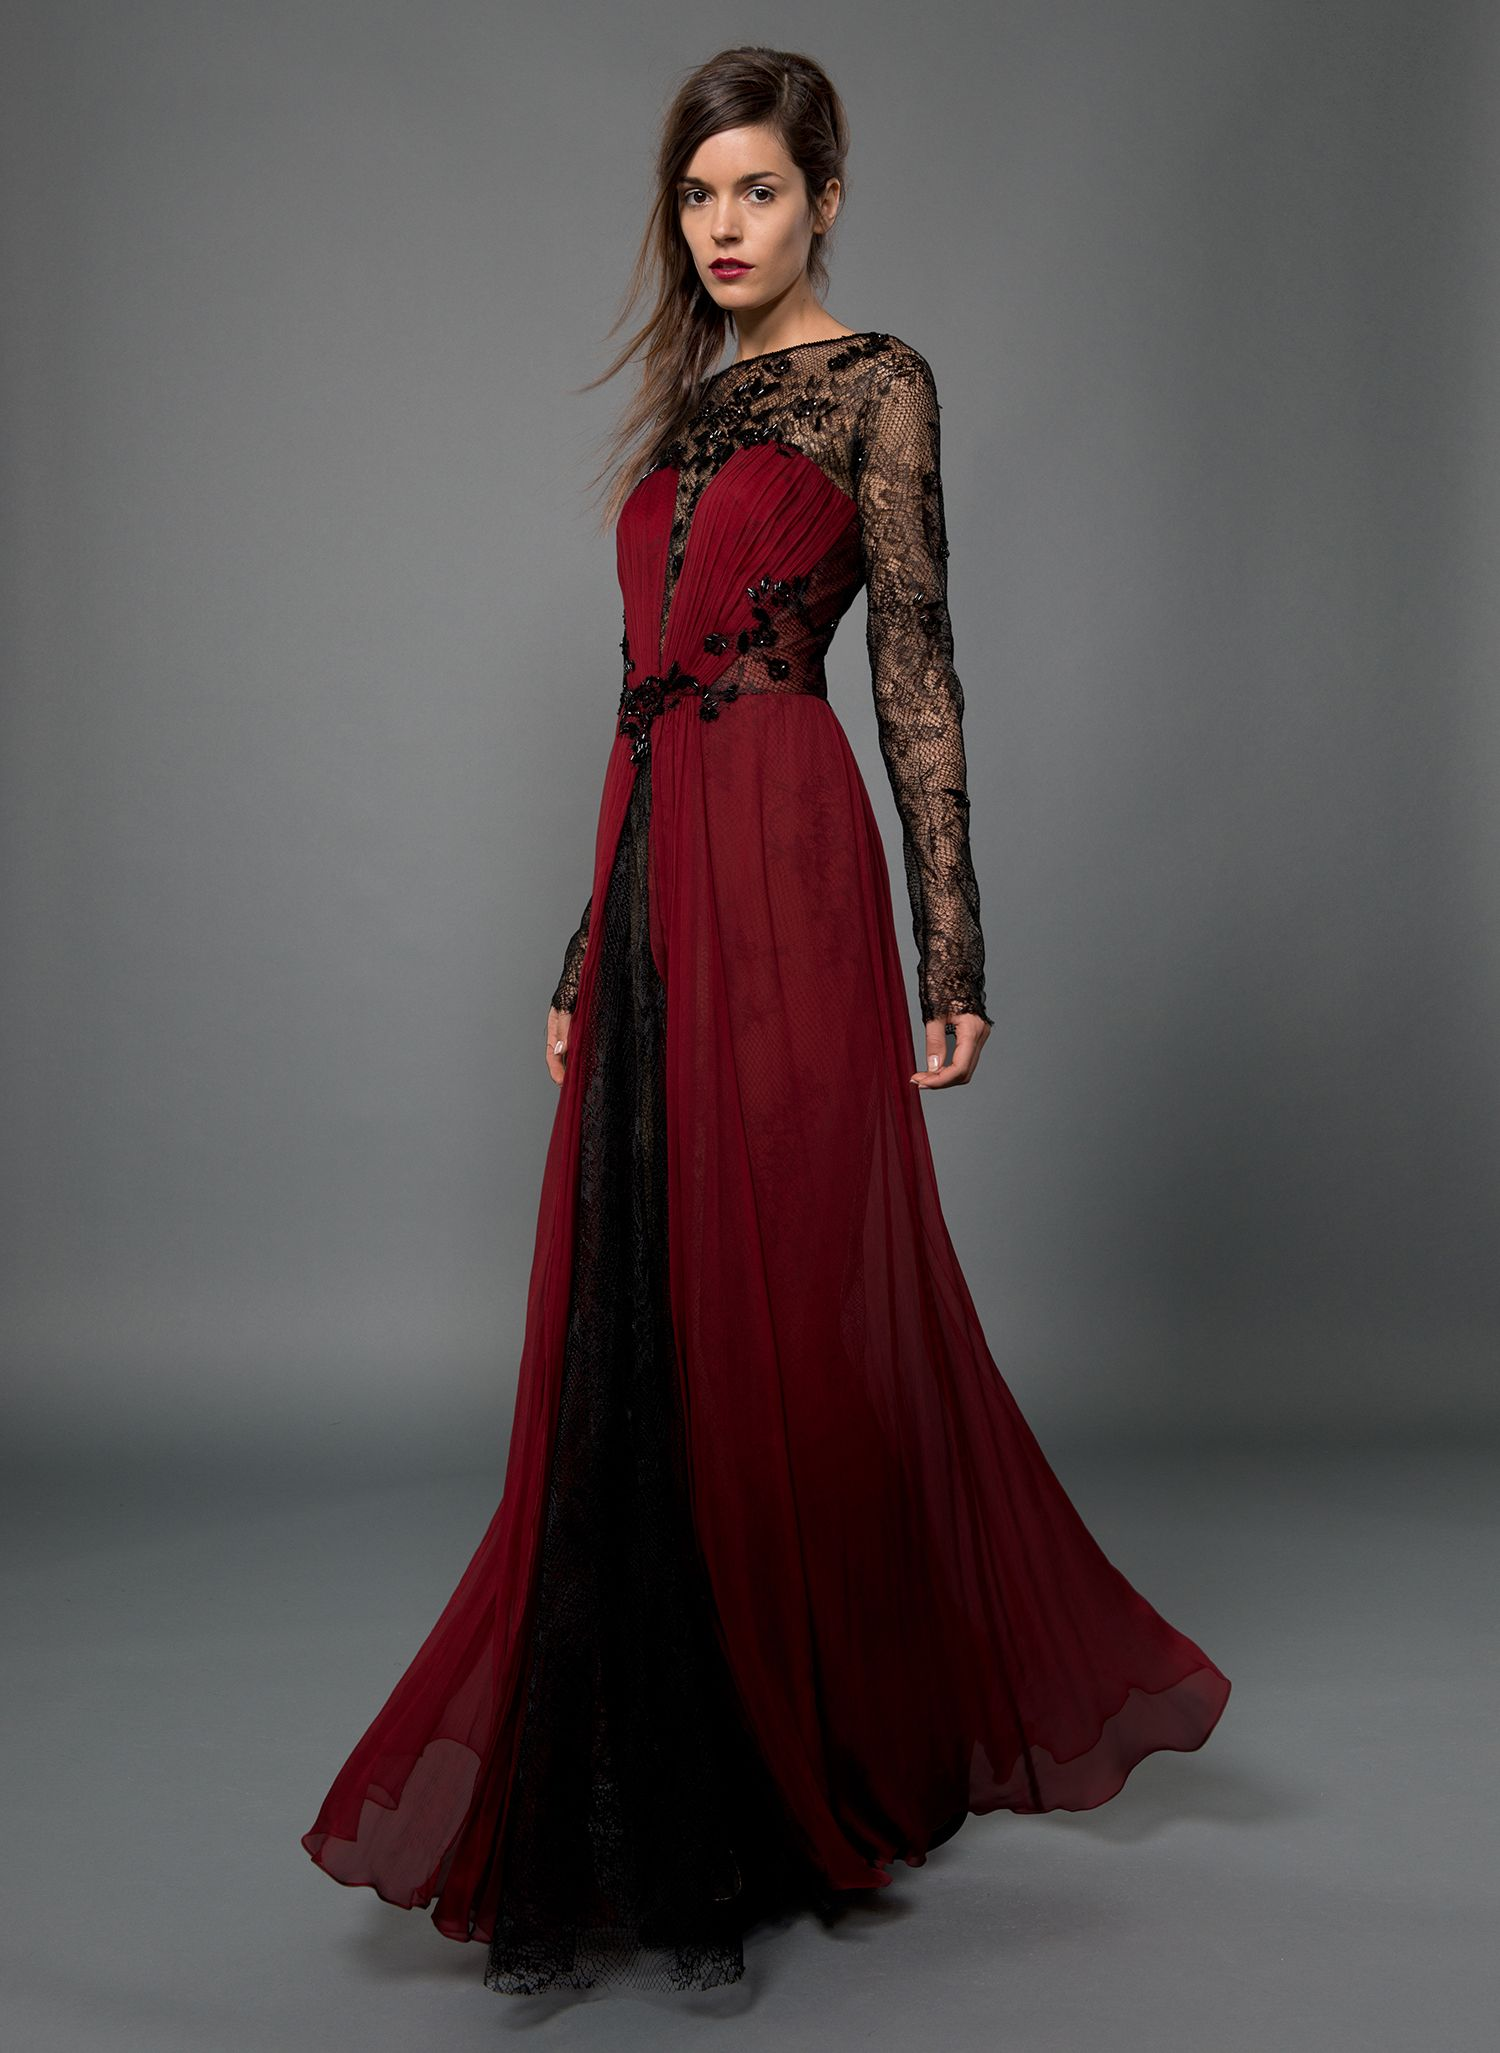 Chiffon and Lace Long Sleeve Gown with Beaded Embellishment in ...